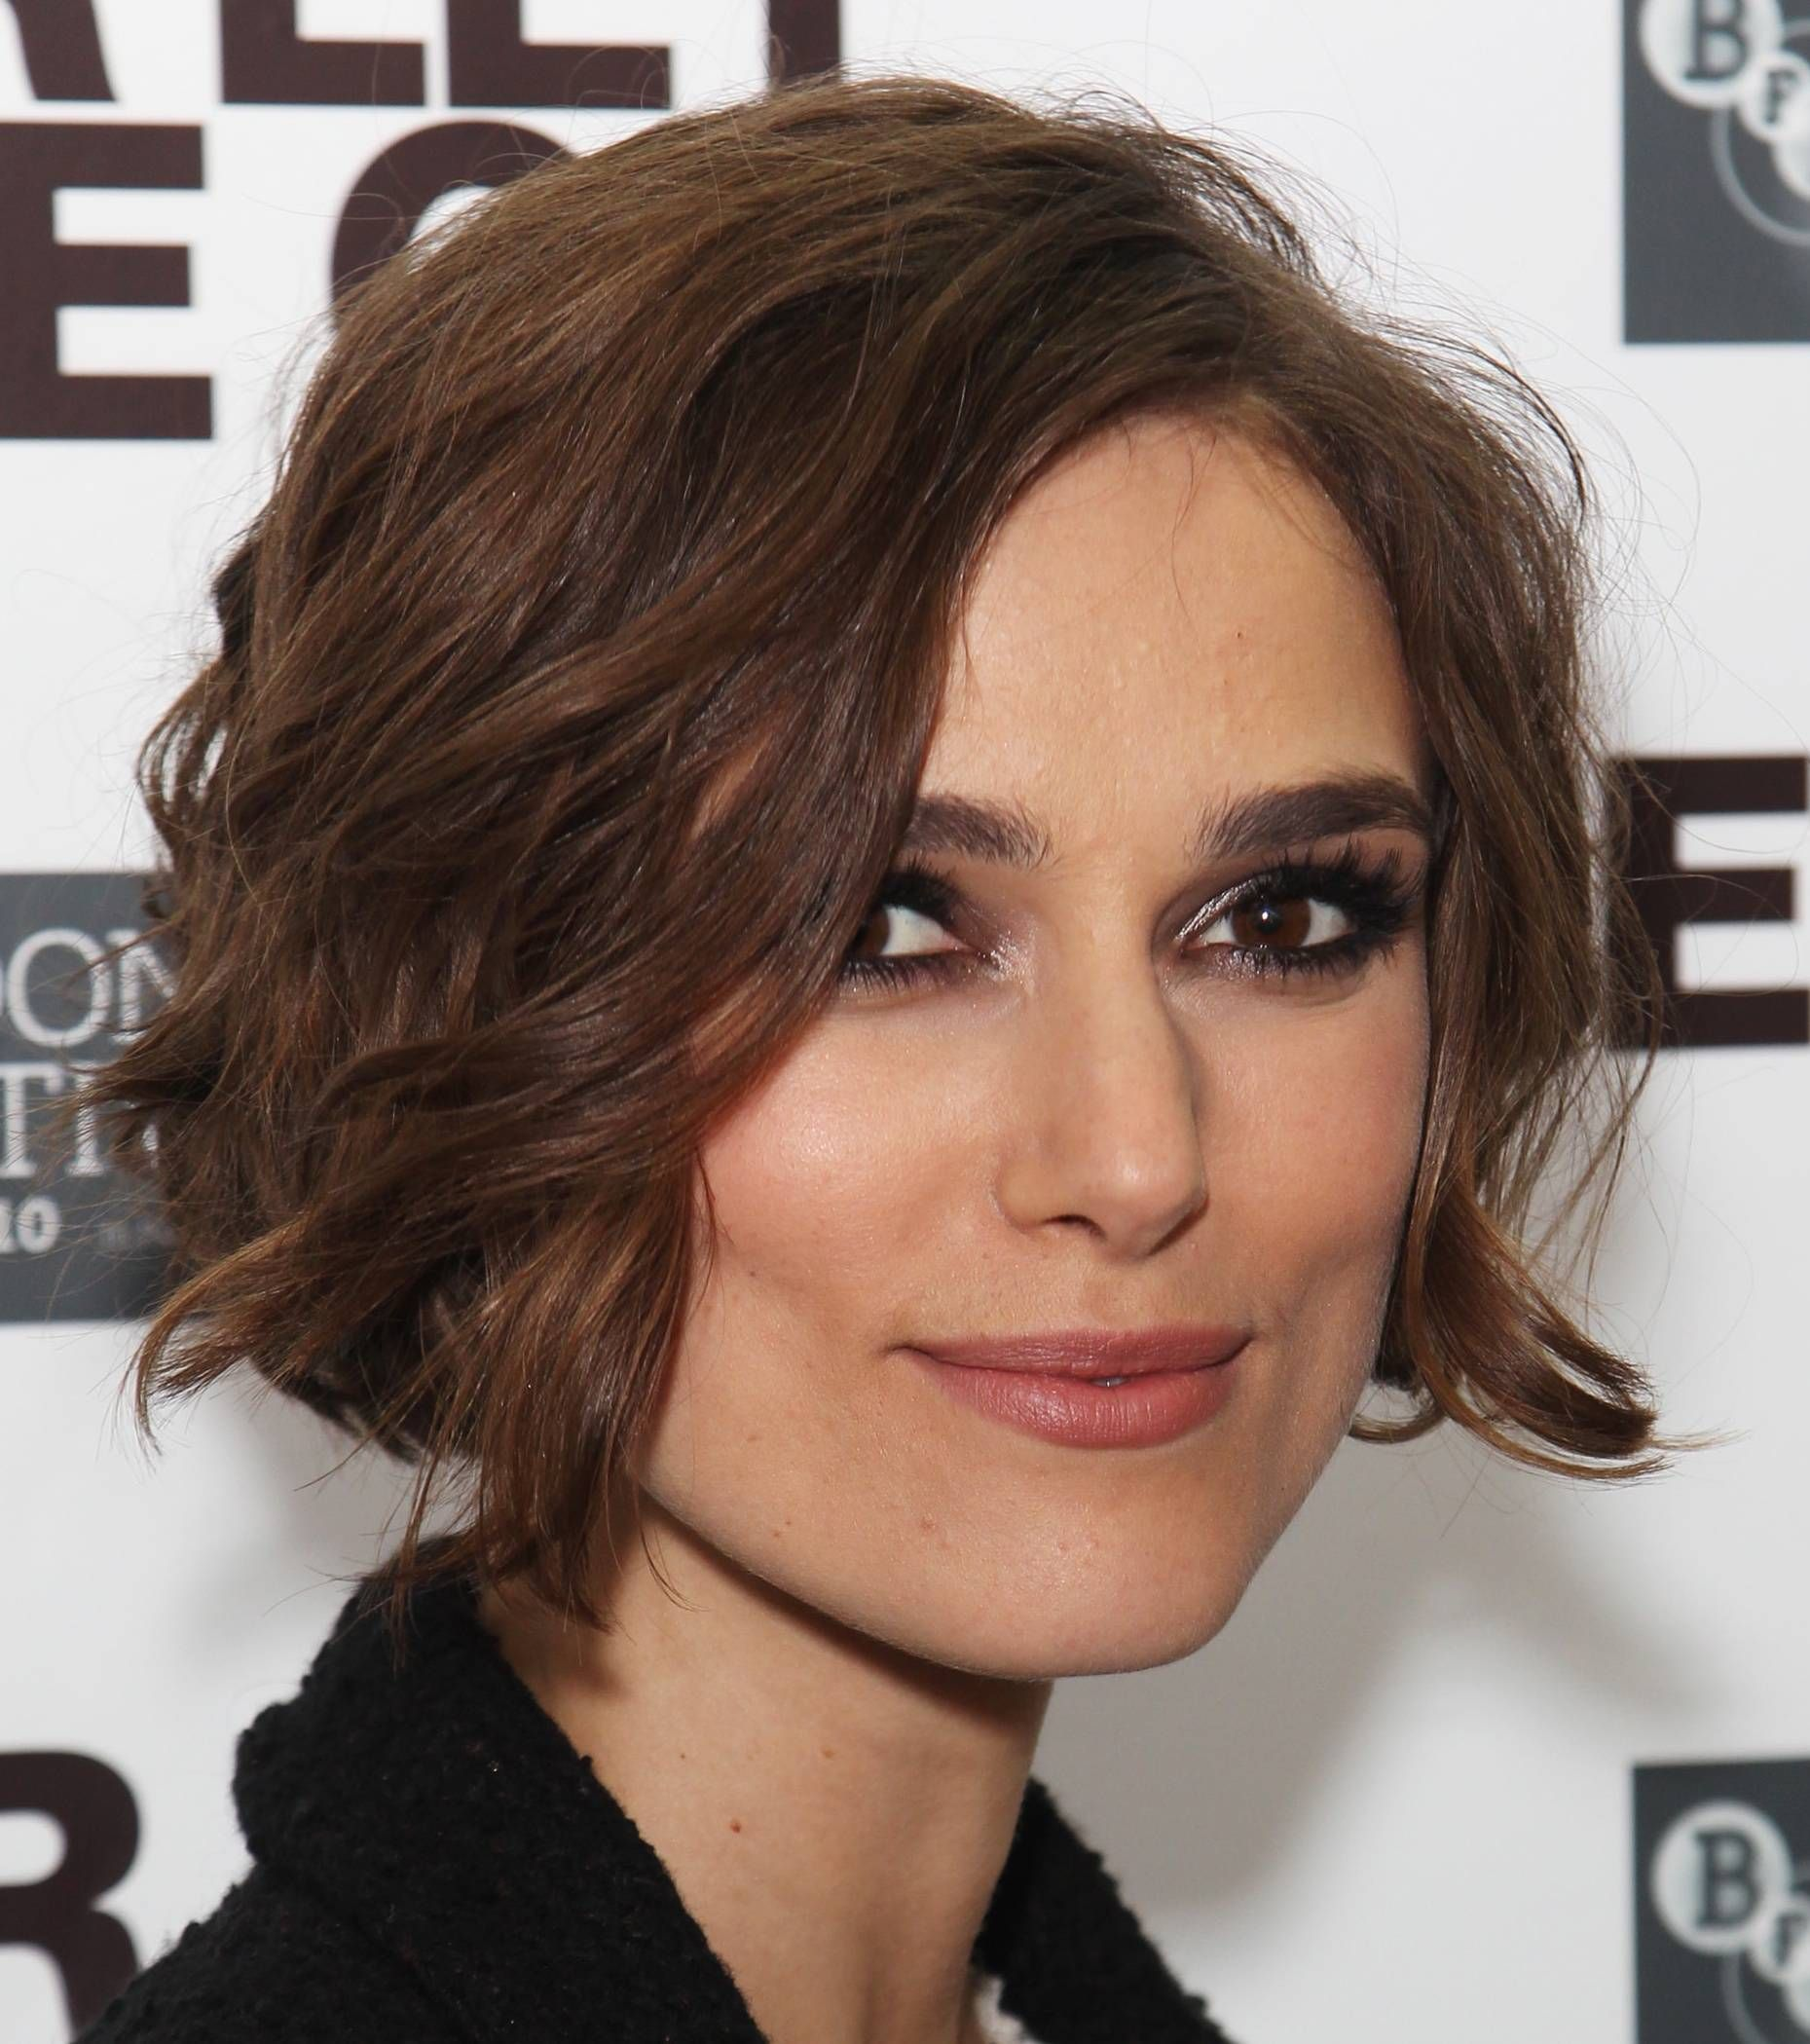 40 spectacular blunt bob hairstyles the right hairstyles - Bobs Are Great On A Square Face As Long As They Are Soft And Layered Best Hairstylesshort